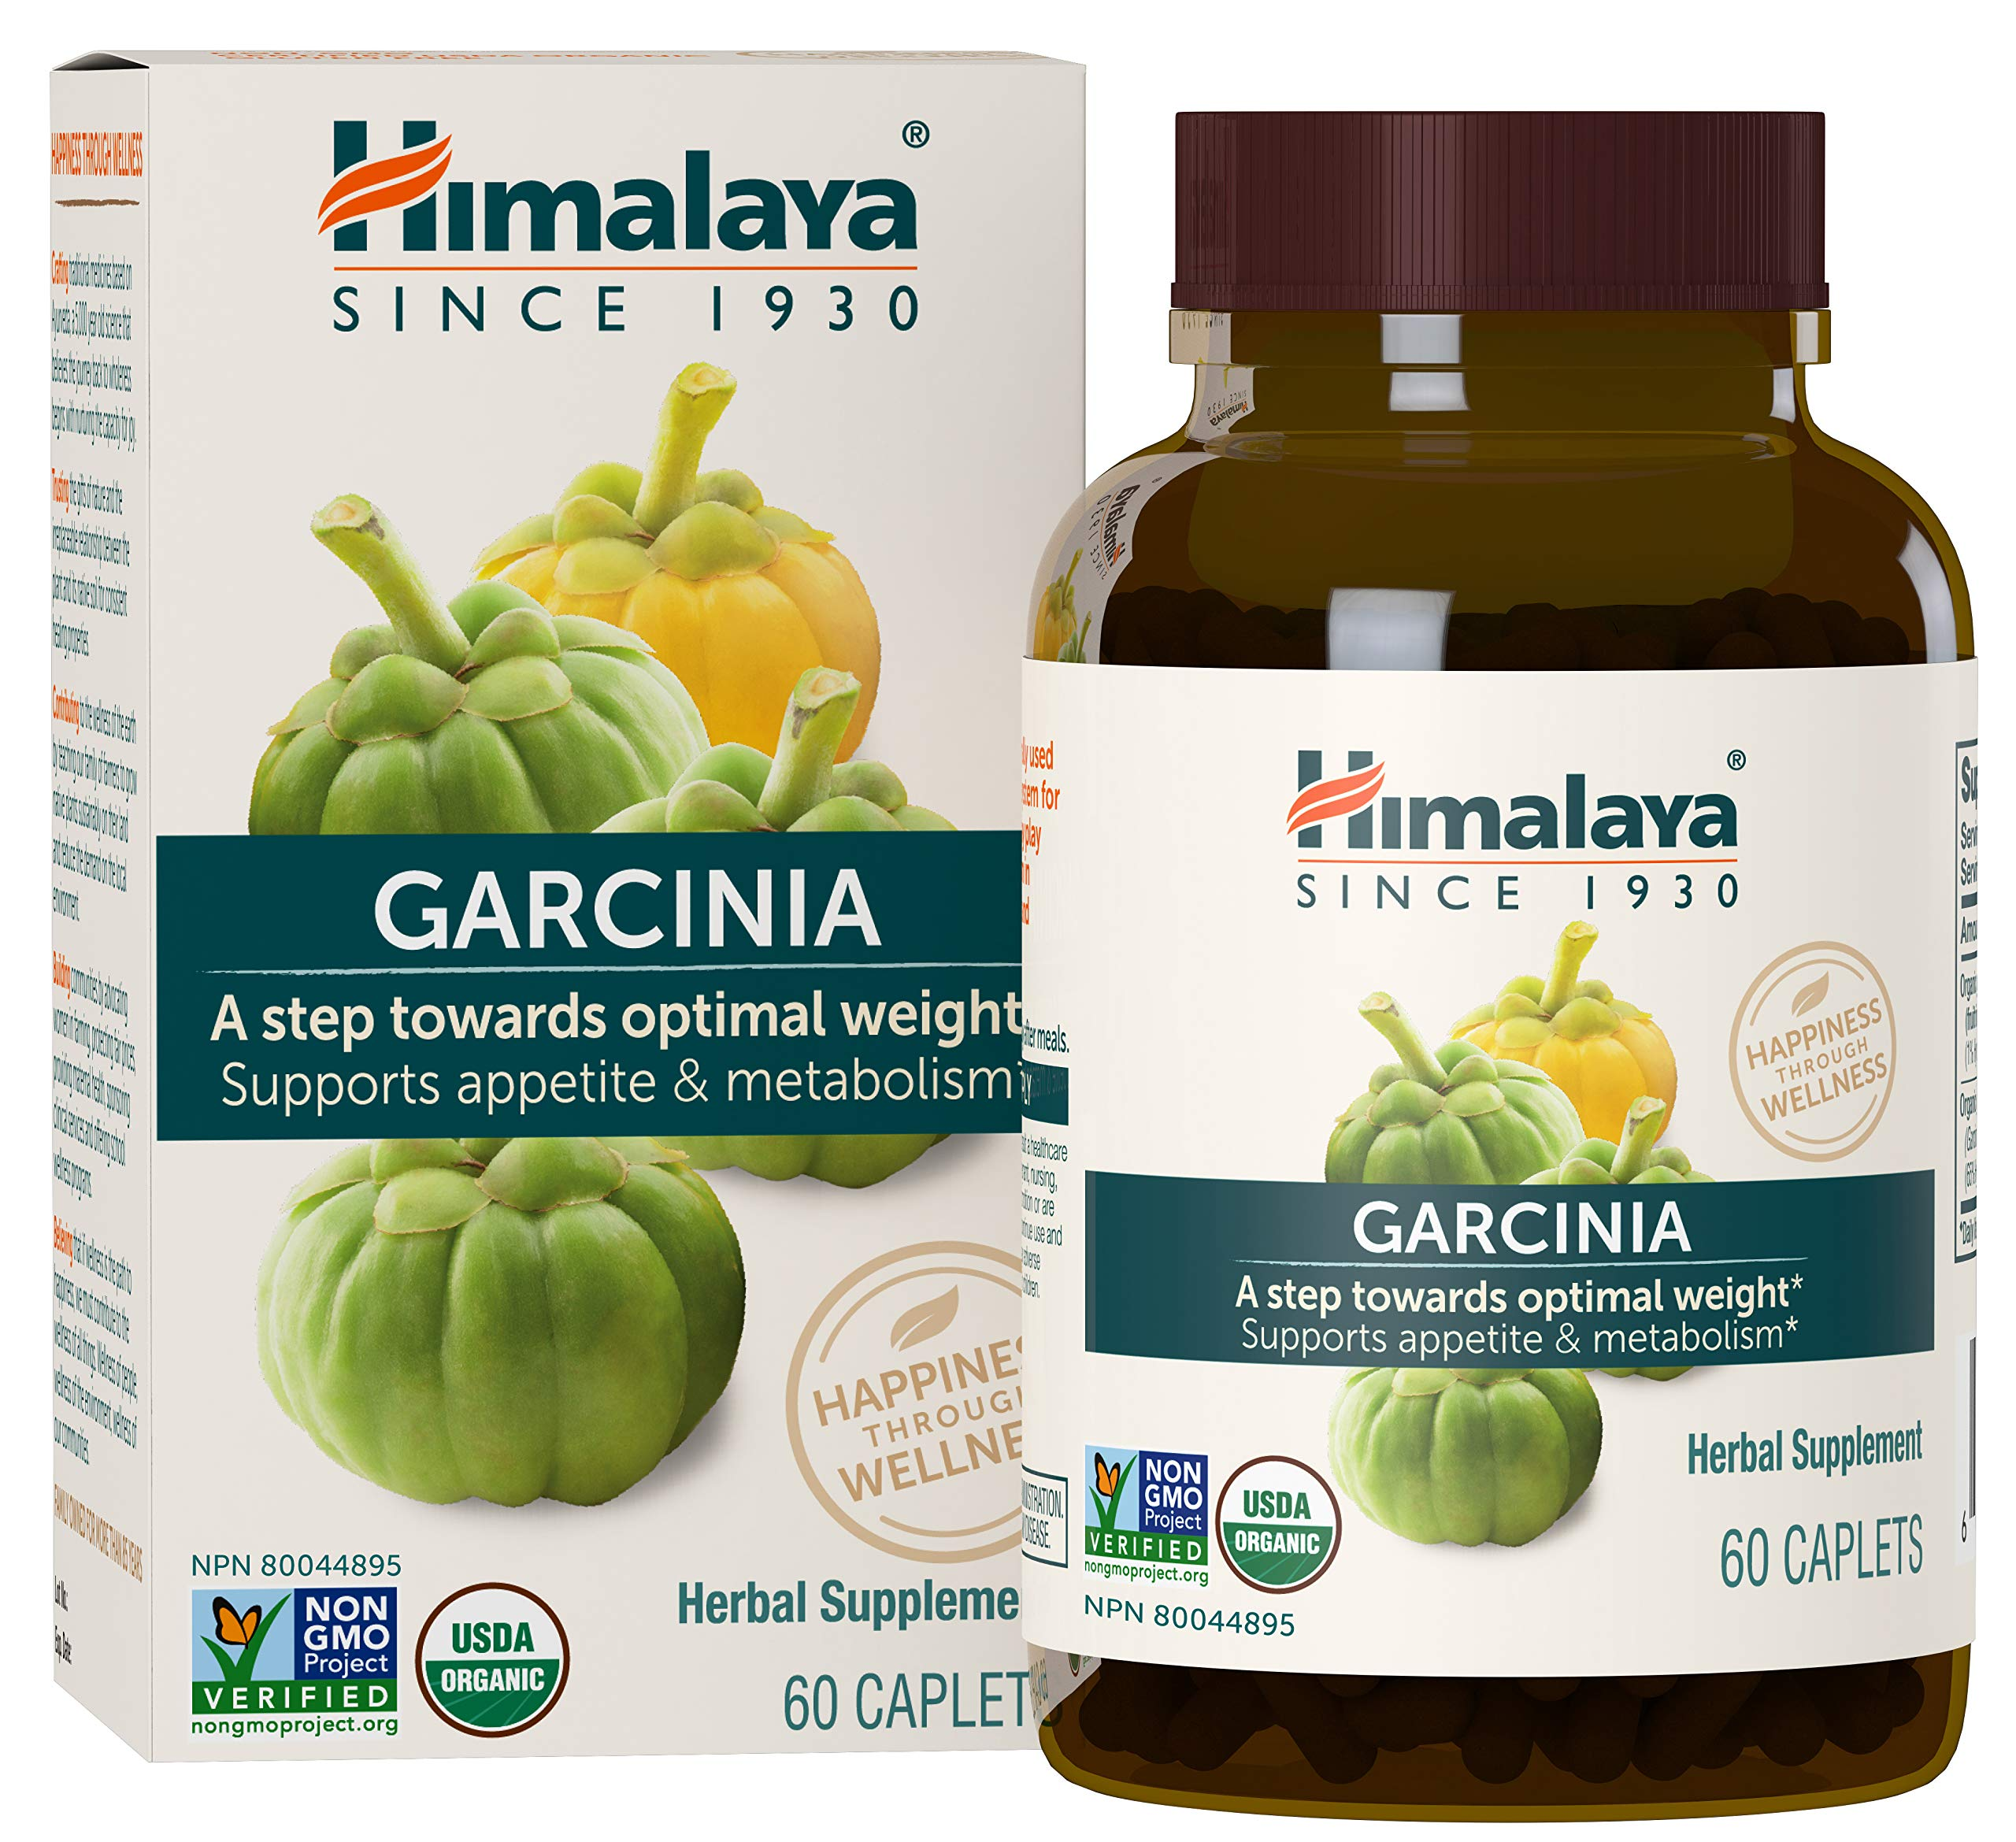 Himalaya Organic Garcinia 60 Caplets for Diet and Optimal Weight 600mg,1 Month Supply by Himalaya Herbal Healthcare